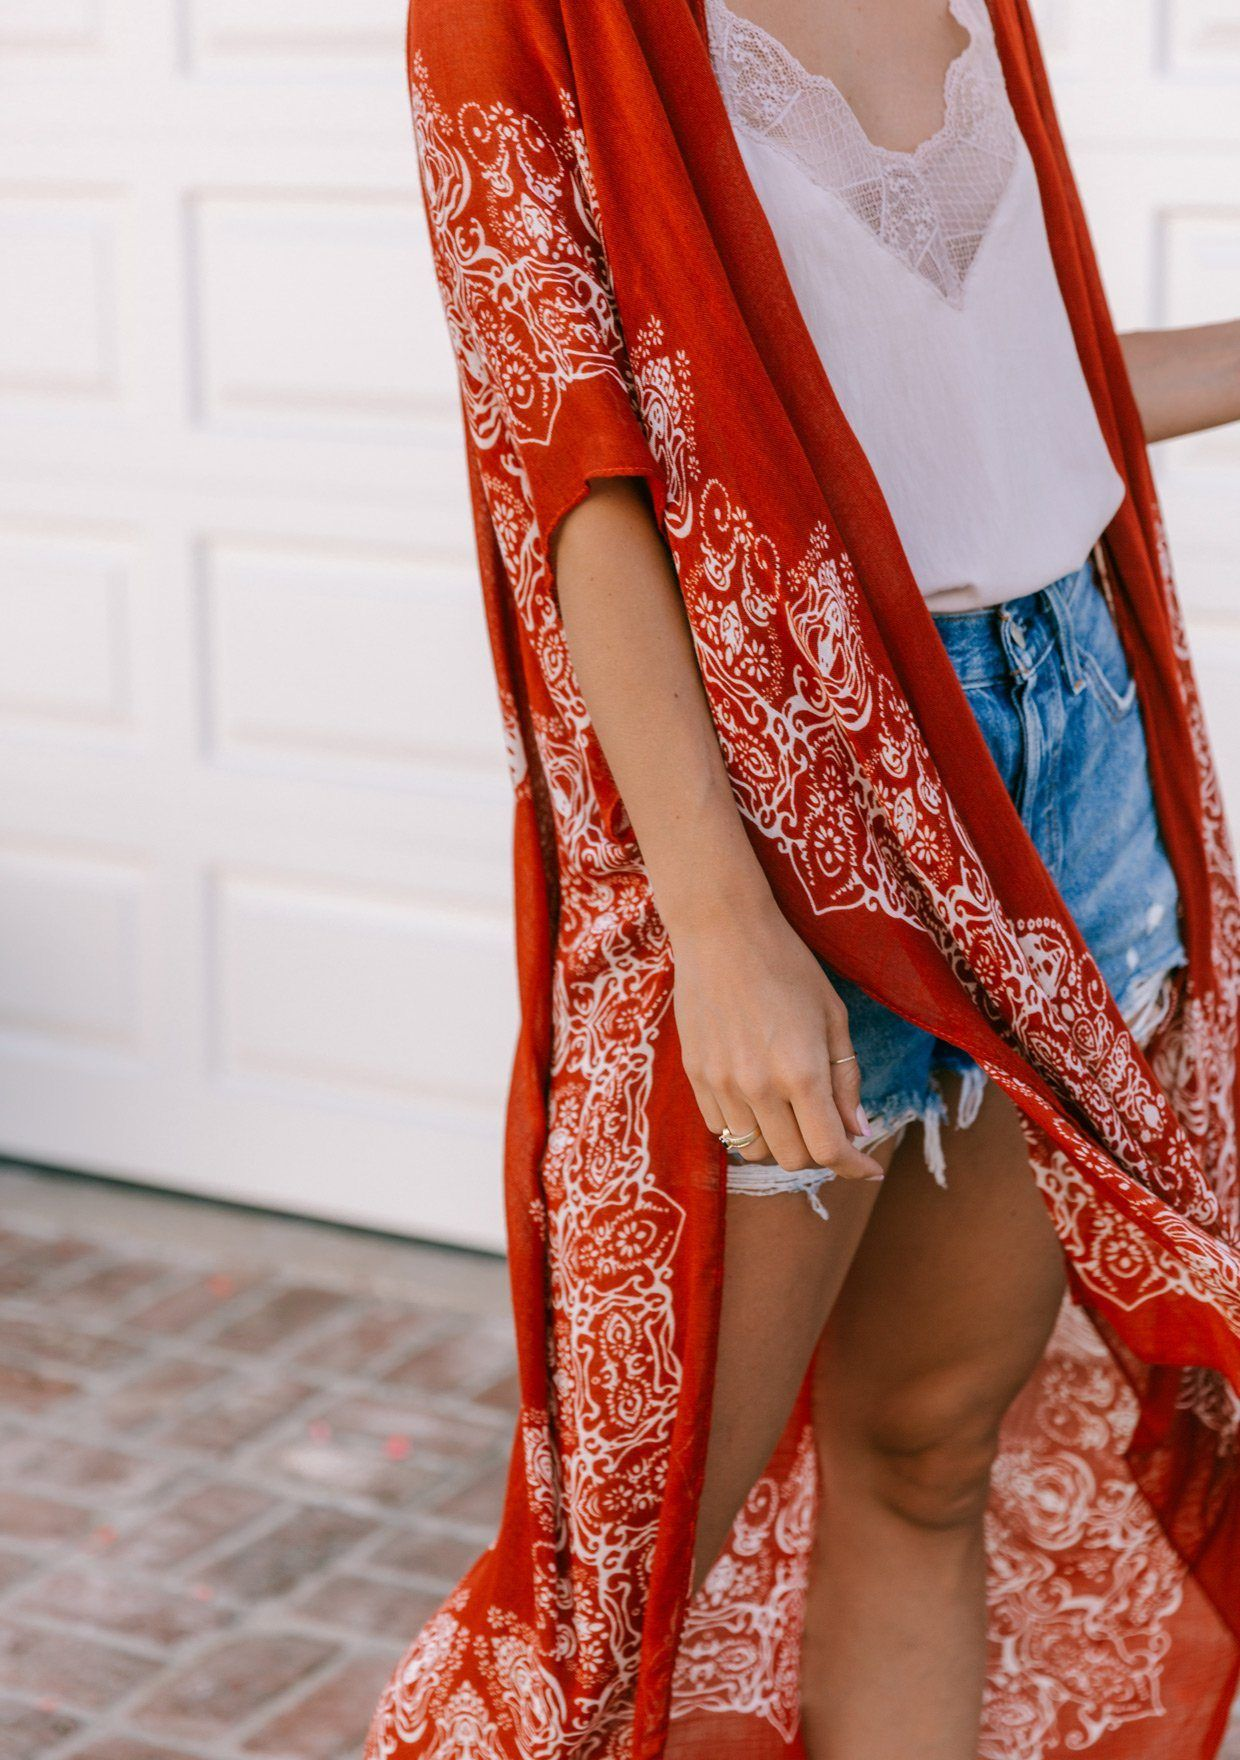 [Color: Red/Bone] Lovestitch beautiful bohemian red maxi kimono with intricate medallion boho print and a sexy side slit. The most flattering beach kimono swimwear cover up.